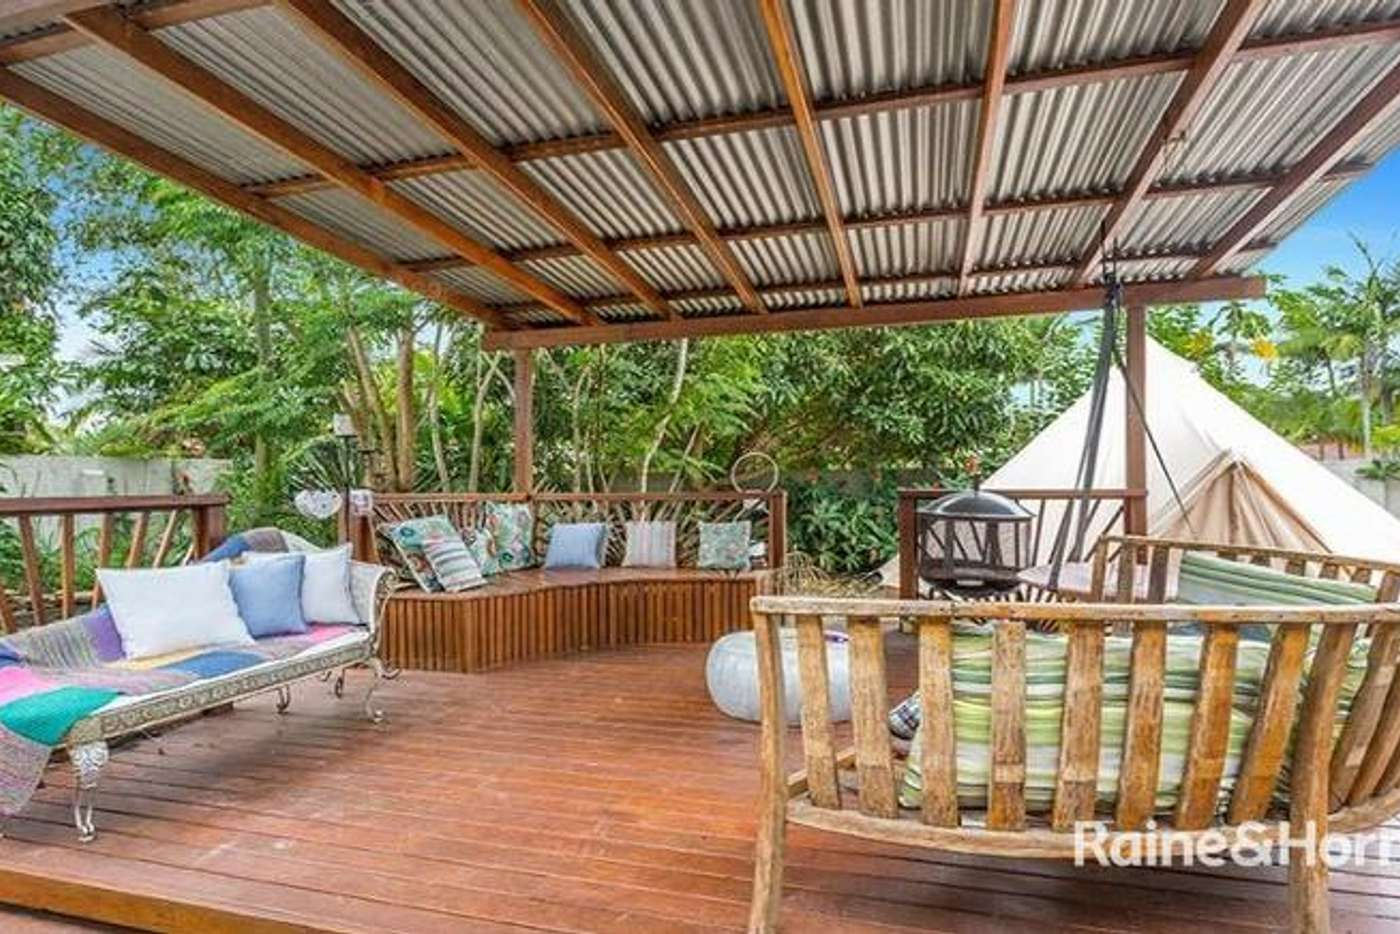 Main view of Homely house listing, 40 Wahlooga Way, Ocean Shores NSW 2483